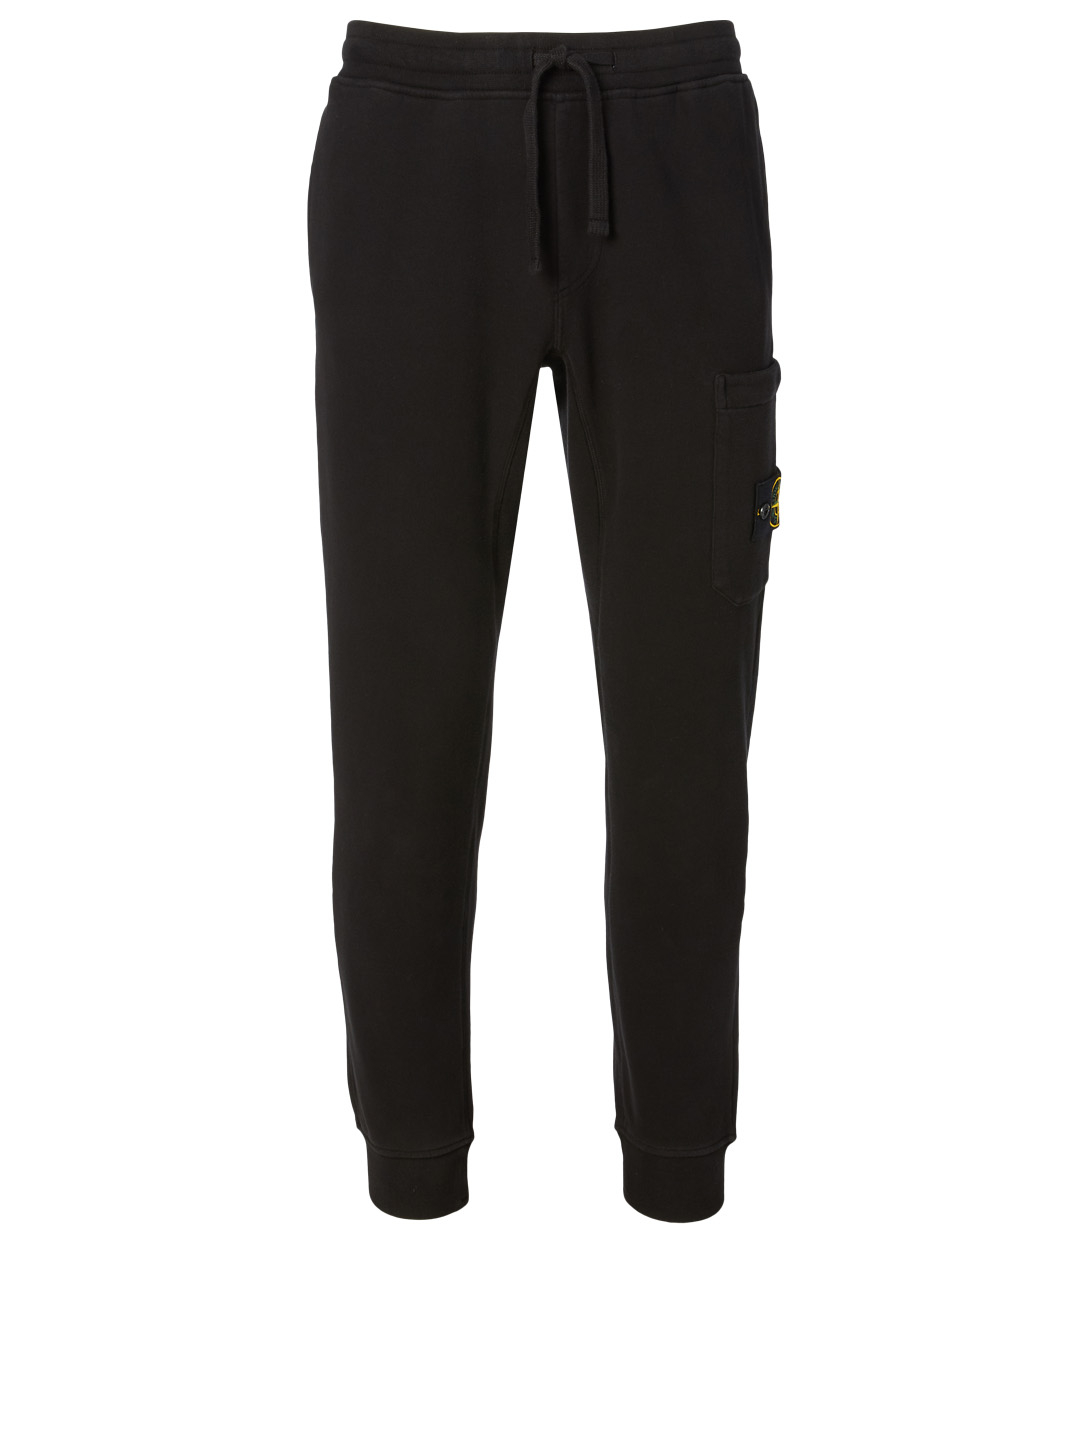 STONE ISLAND Fleece Jogger Pants Men's Black